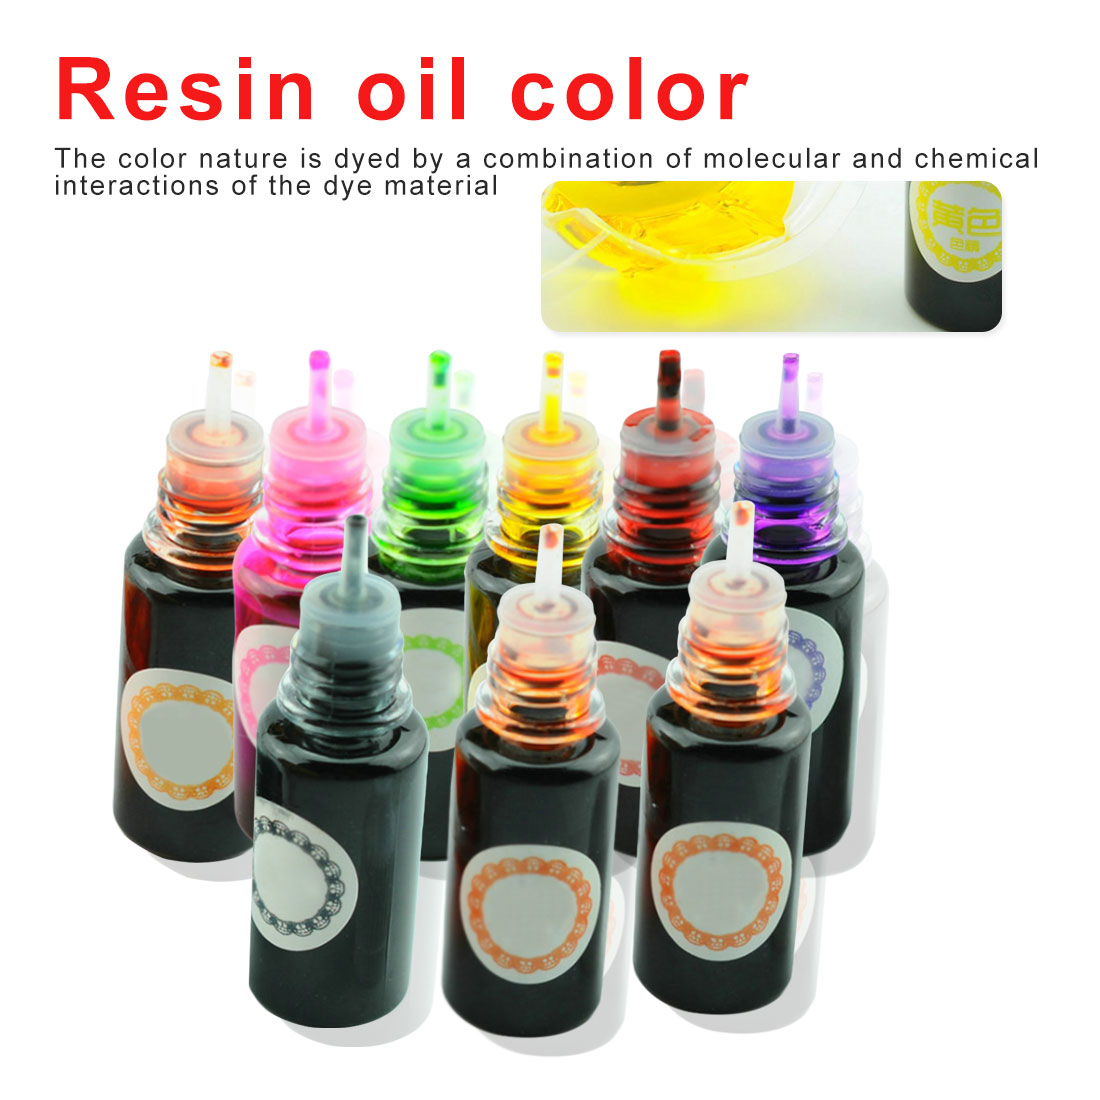 Soap Making 10ml Handmade Soap Dye Pigments Base Color Liquid Pigment DIY Manual Soap Colorant Tool Kit